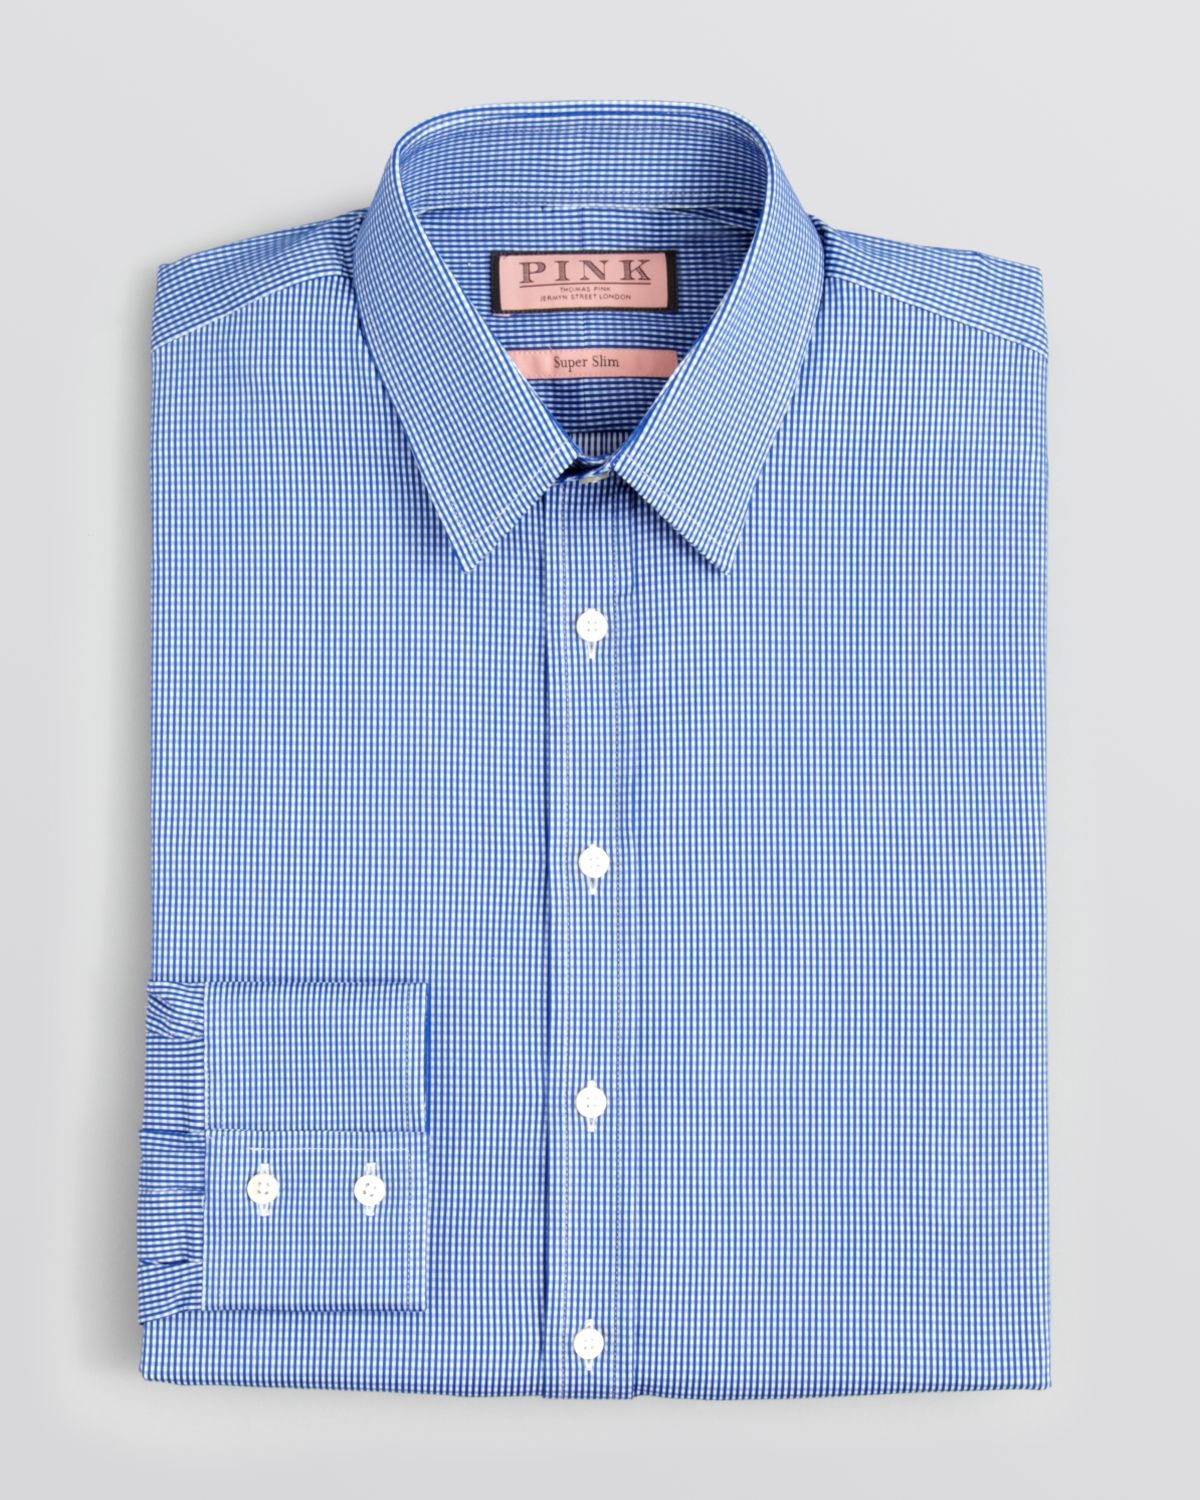 Thomas pink lydiard check dress shirt slim fit in blue for for Pink checkered dress shirt